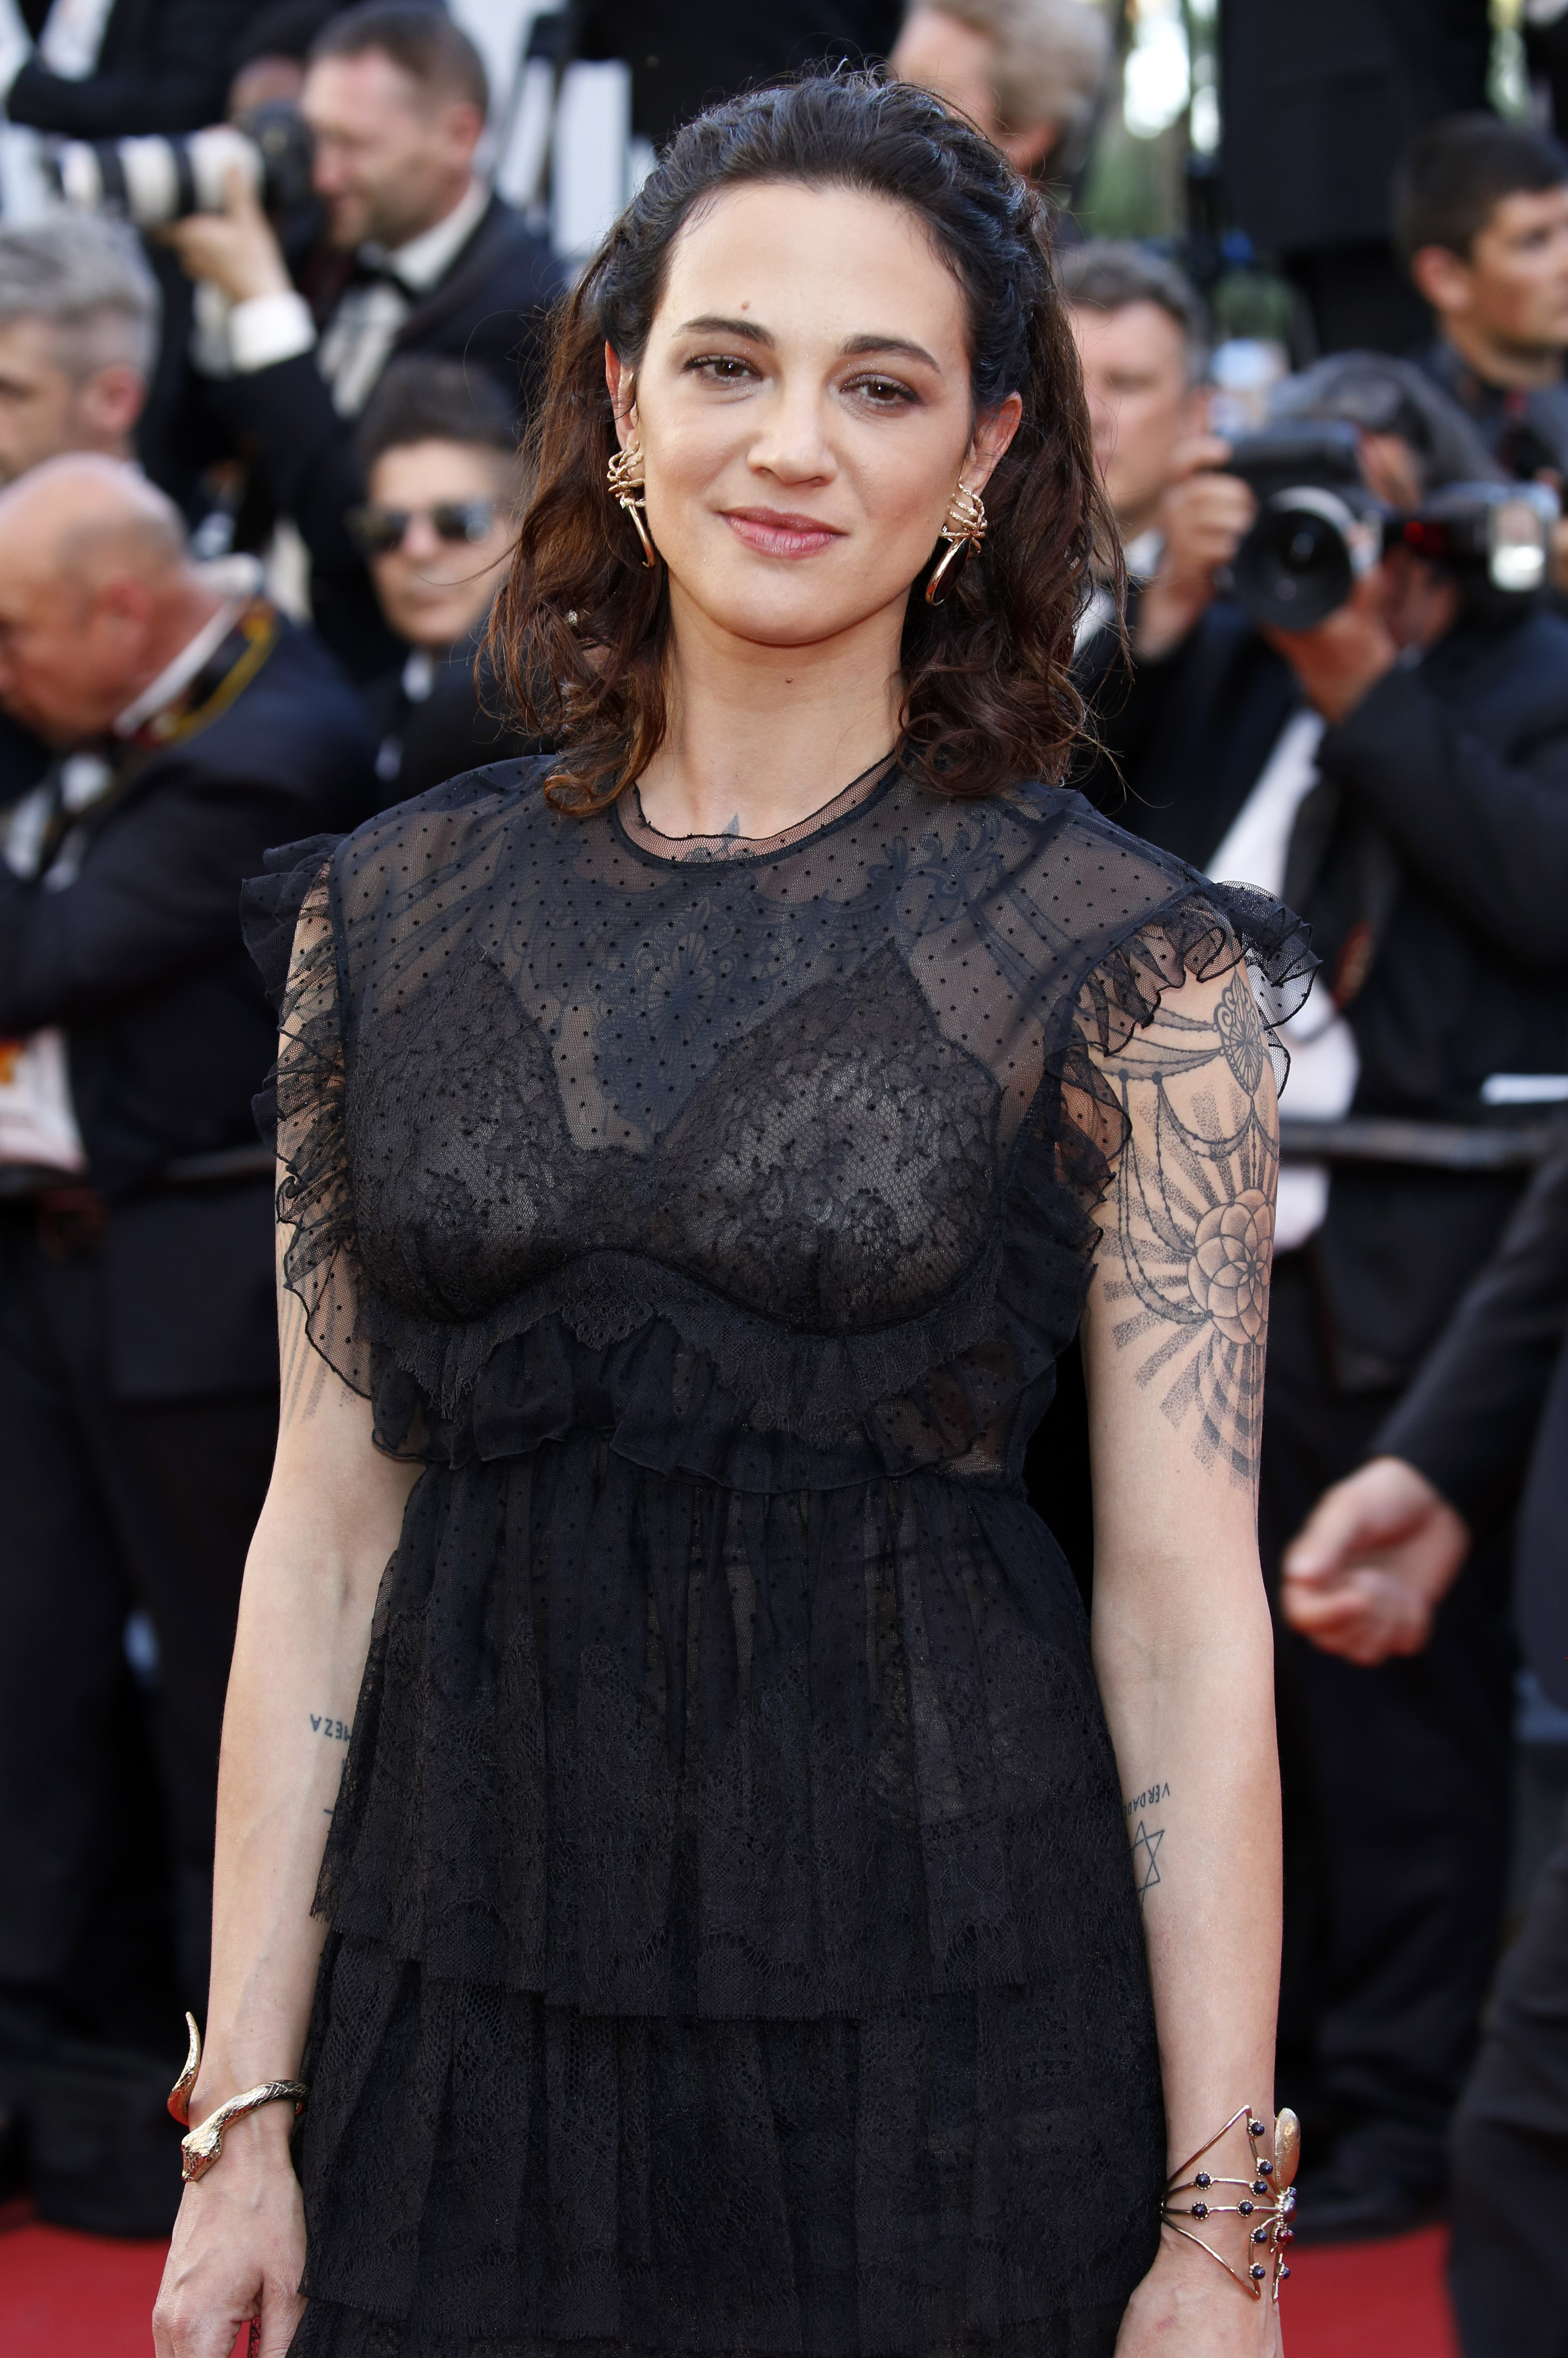 Asia Argento at the 70th Cannes Film Festival - 'Ismael's Ghosts (Les Fantomes d'Ismael)' - Premiere. When: 17 May 2017 Credit: Dave Bedrosian/Future Image/WENN.com